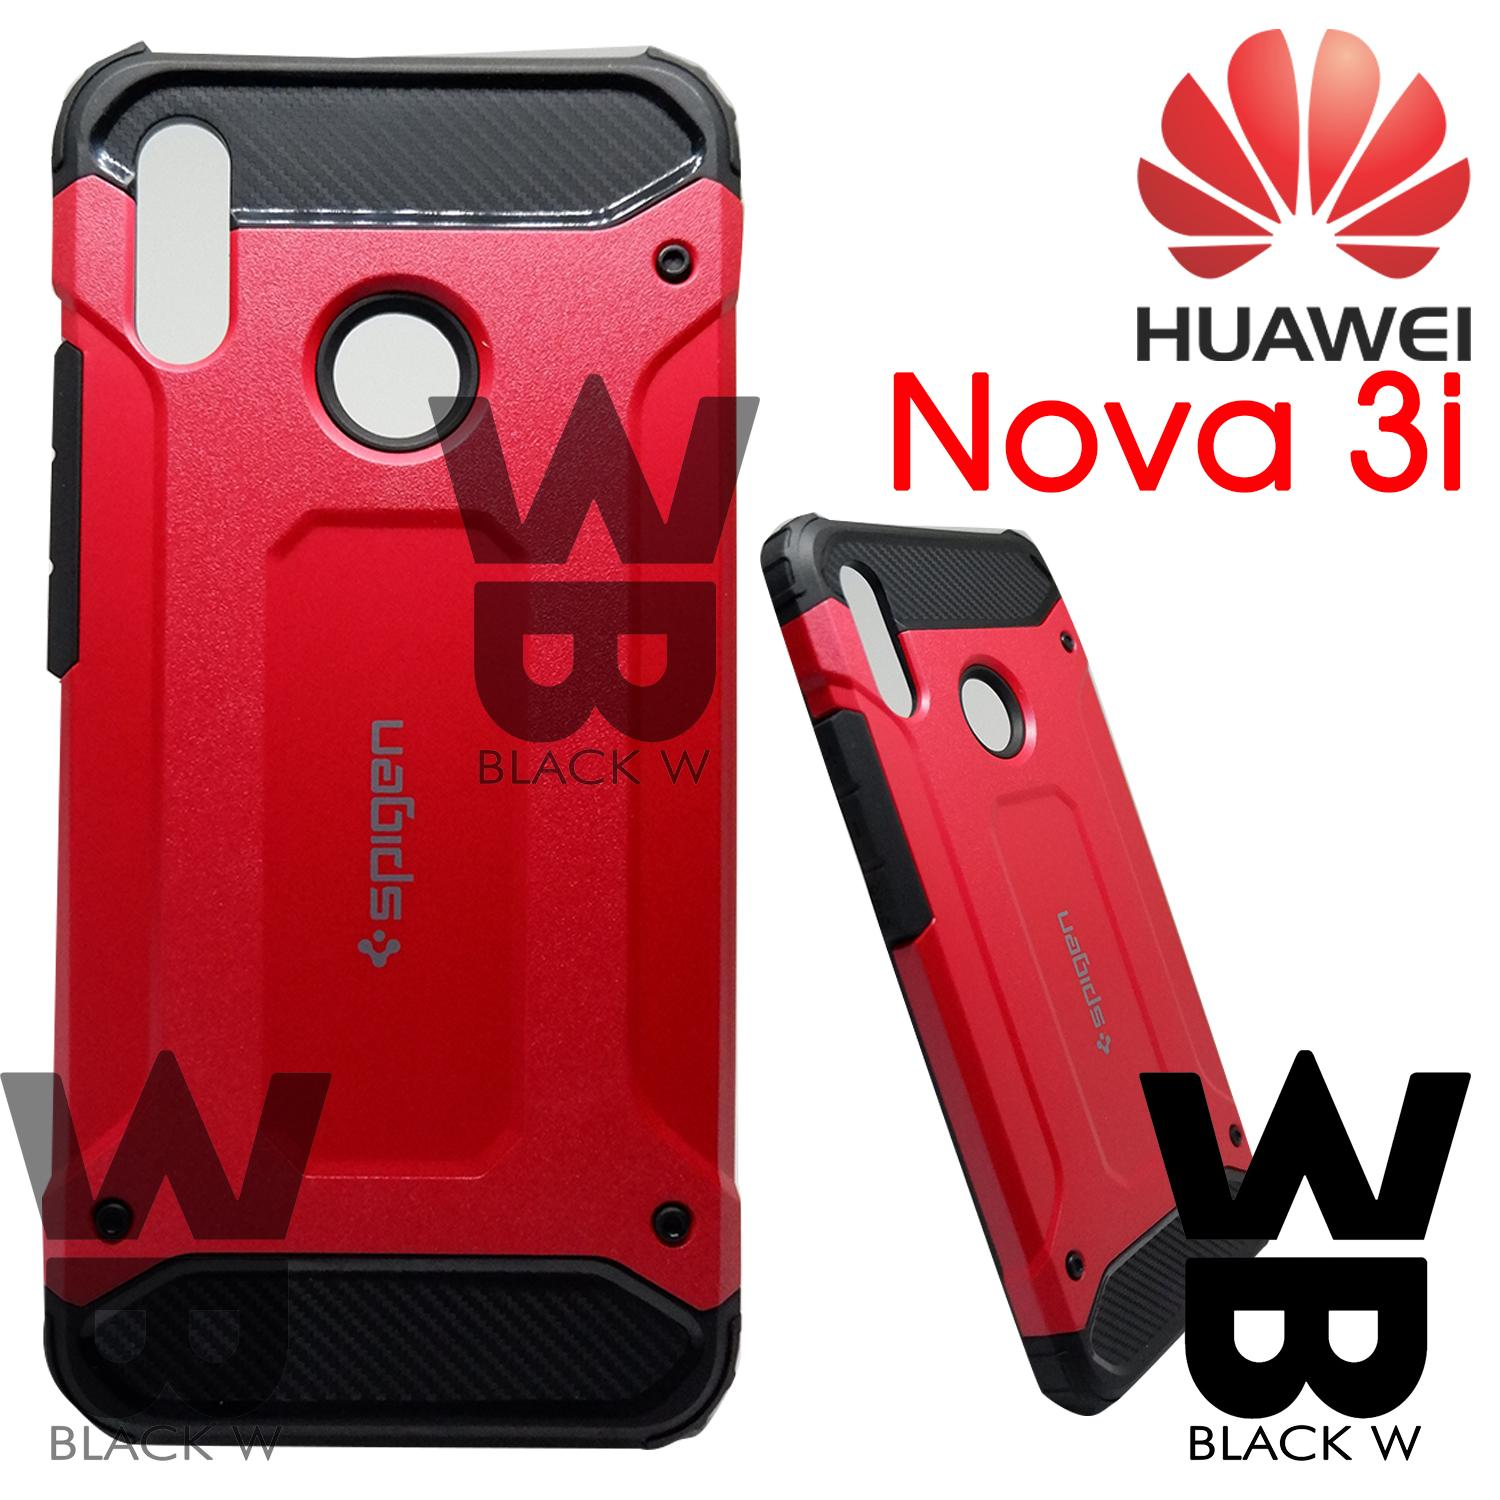 reputable site c1e7a 52a0e Huawei Phone Cases Philippines - Huawei Cellphone Cases for sale ...